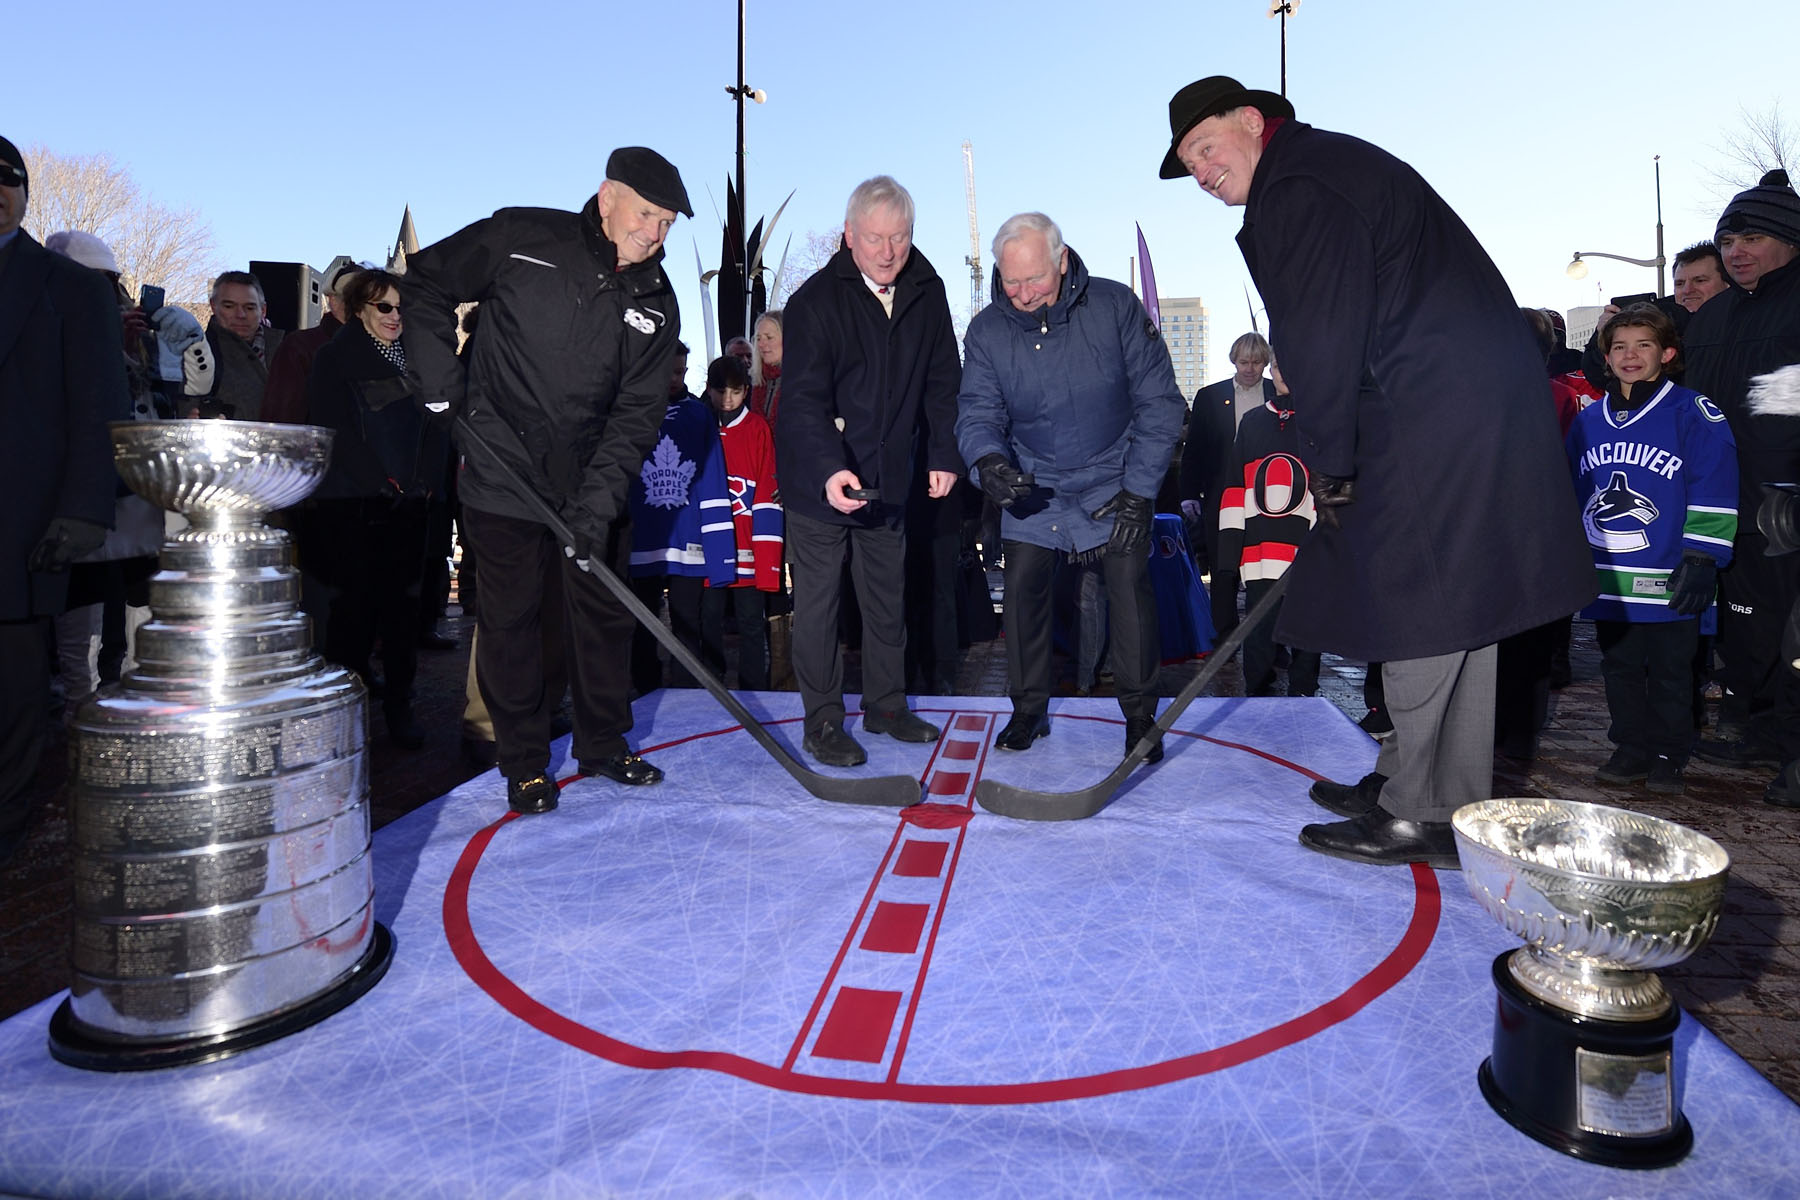 His Excellency, joined by Mr. Hunter and NHL alumni Frank Maholvich (right) and Dave Keon (left) participated in the groundbreaking of the Lord Stanley's Gift Monument with a ceremonial puck-drop.